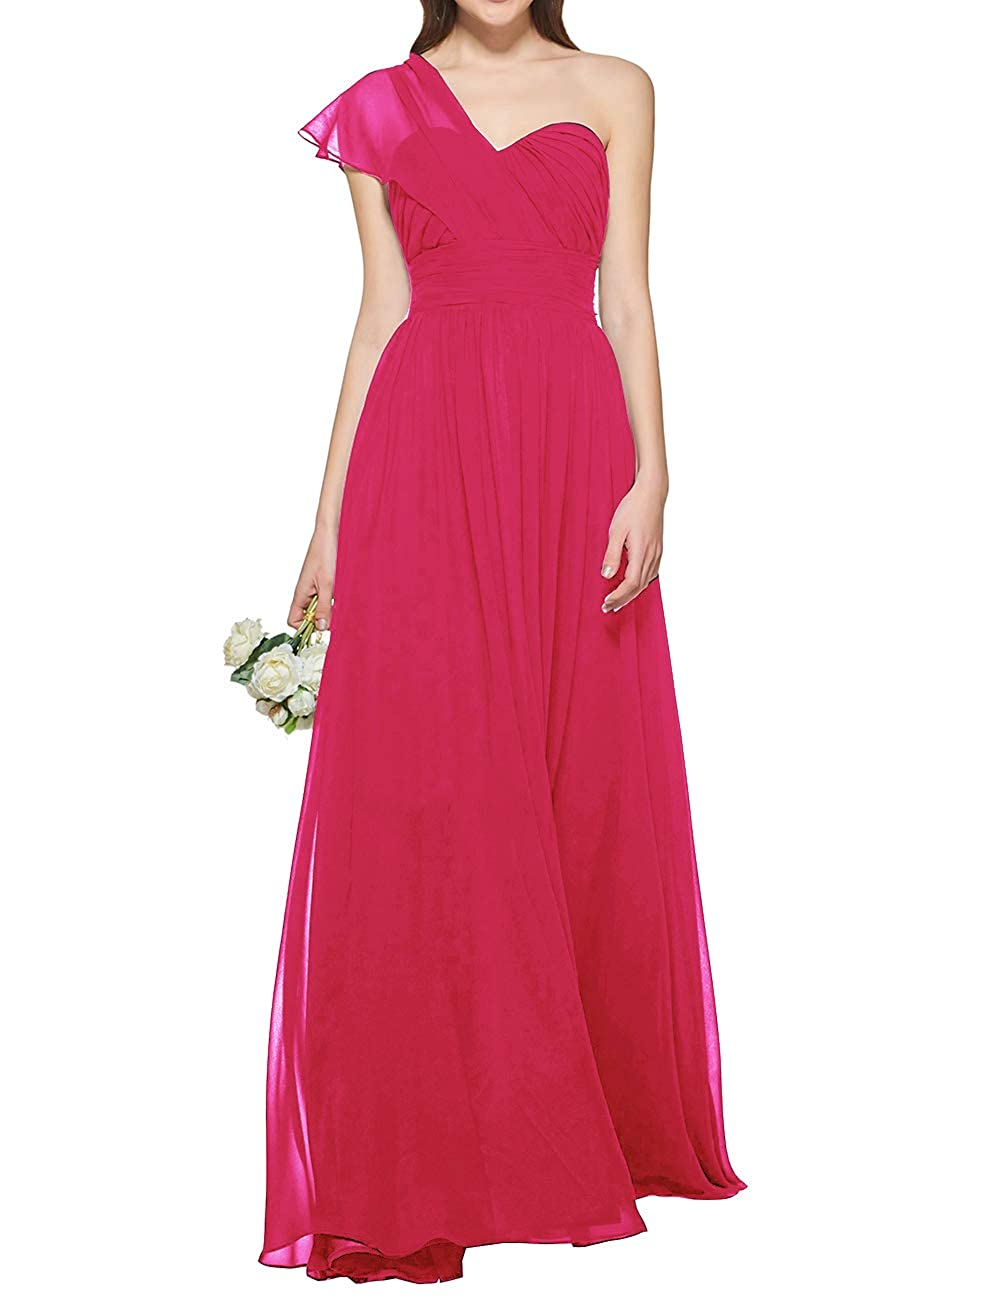 Hot Pink Uther Women's One Shoulder Bridesmaid Dress Long Prom Evening Gown A Line